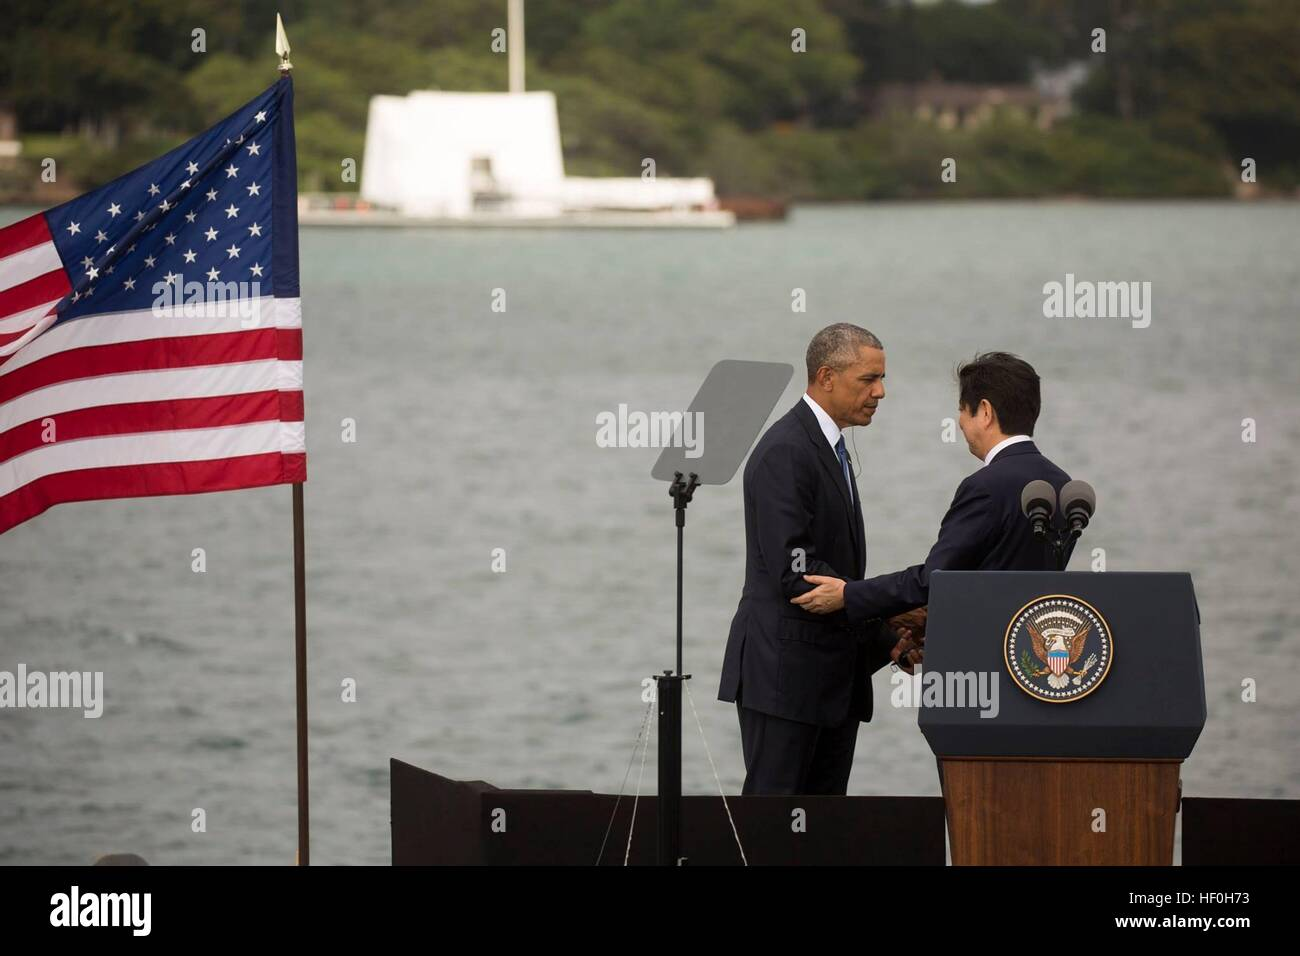 Pearl Harbour, Hawaii. 27th Dec, 2016. U.S President Barack Obama and Japanese Prime Minister Shinzo Abe after delivering - Stock Image